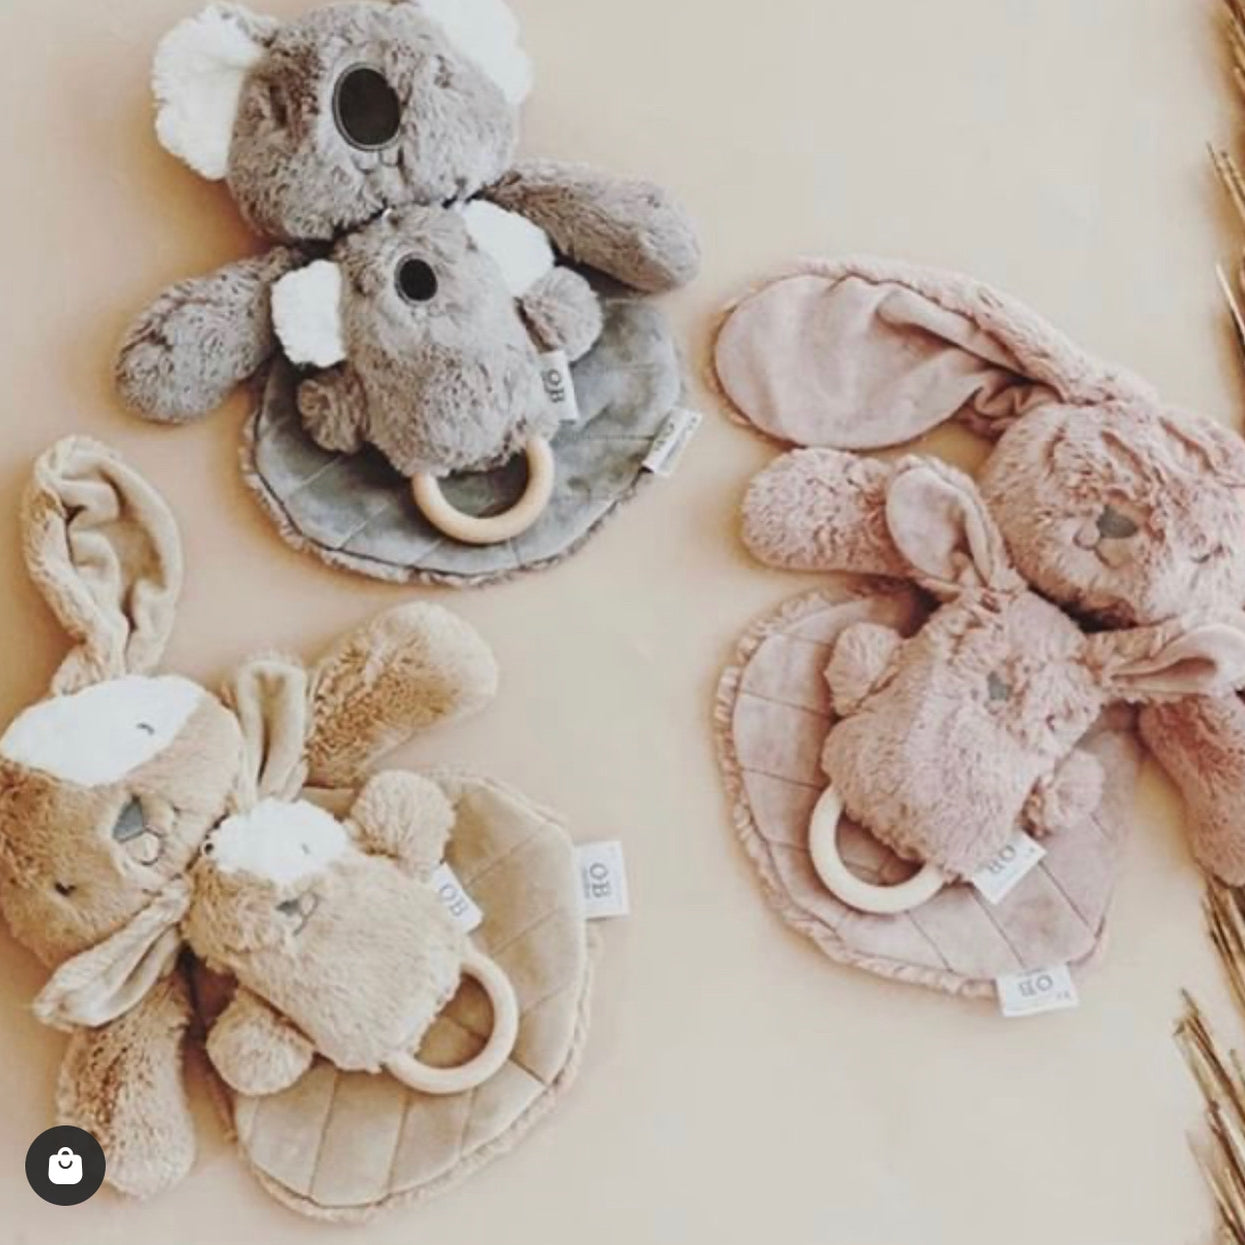 New Baby Gifts - Giften Market